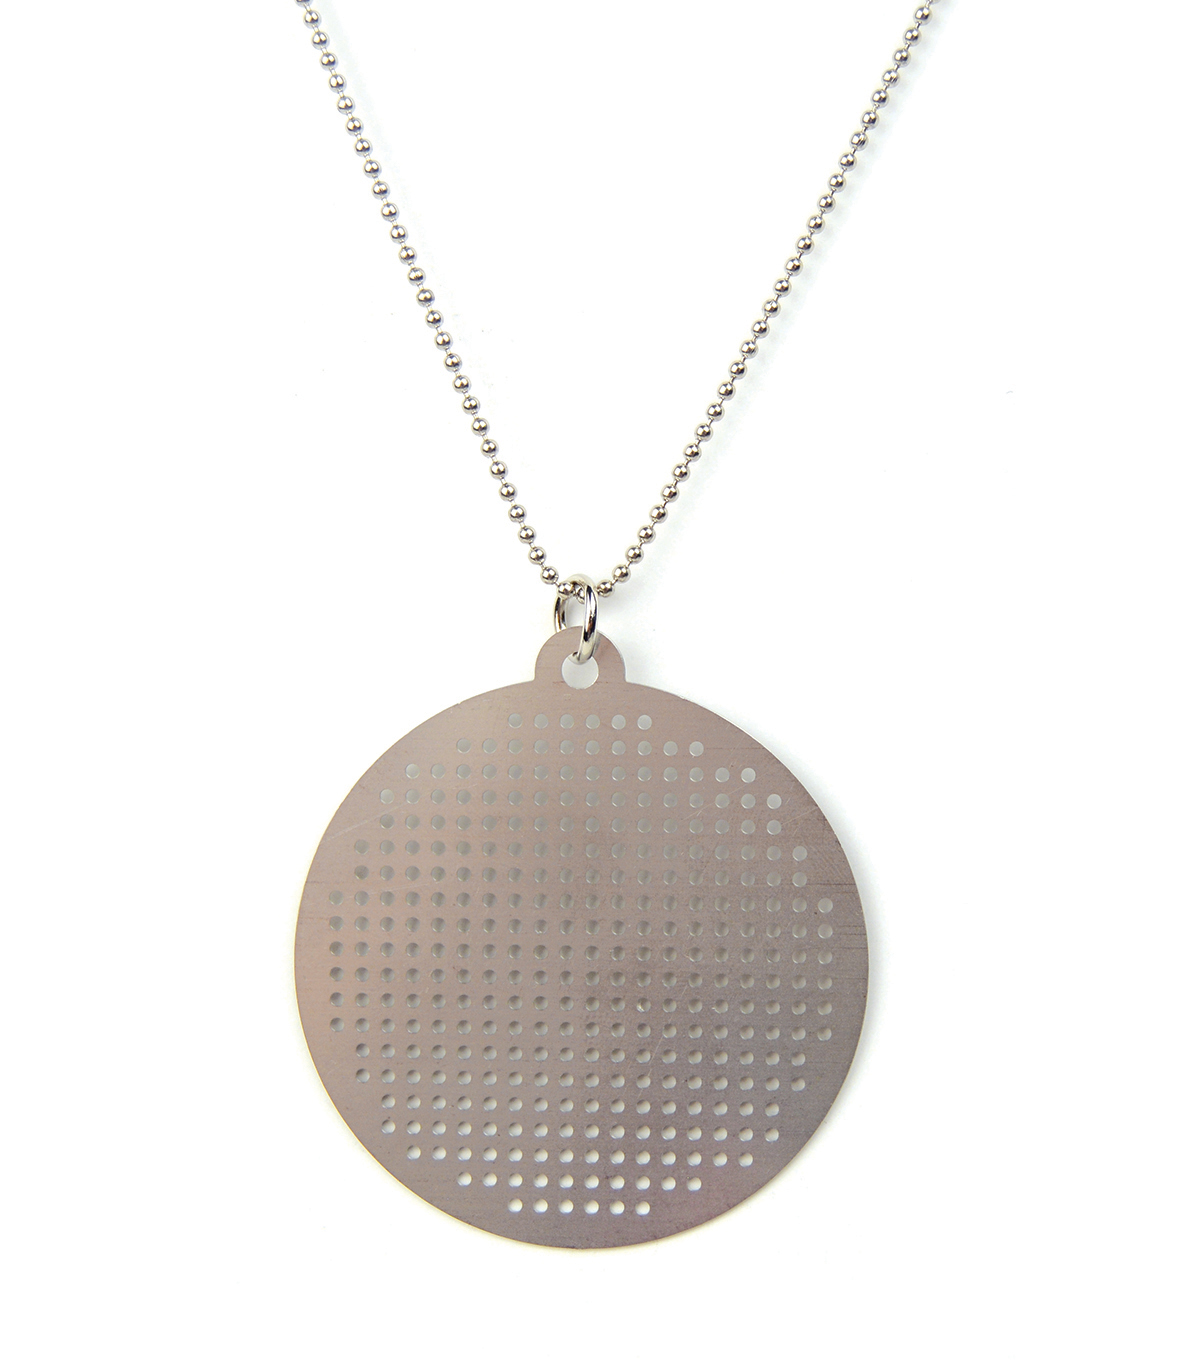 Cross Stitch Style Metal Necklace-Circle